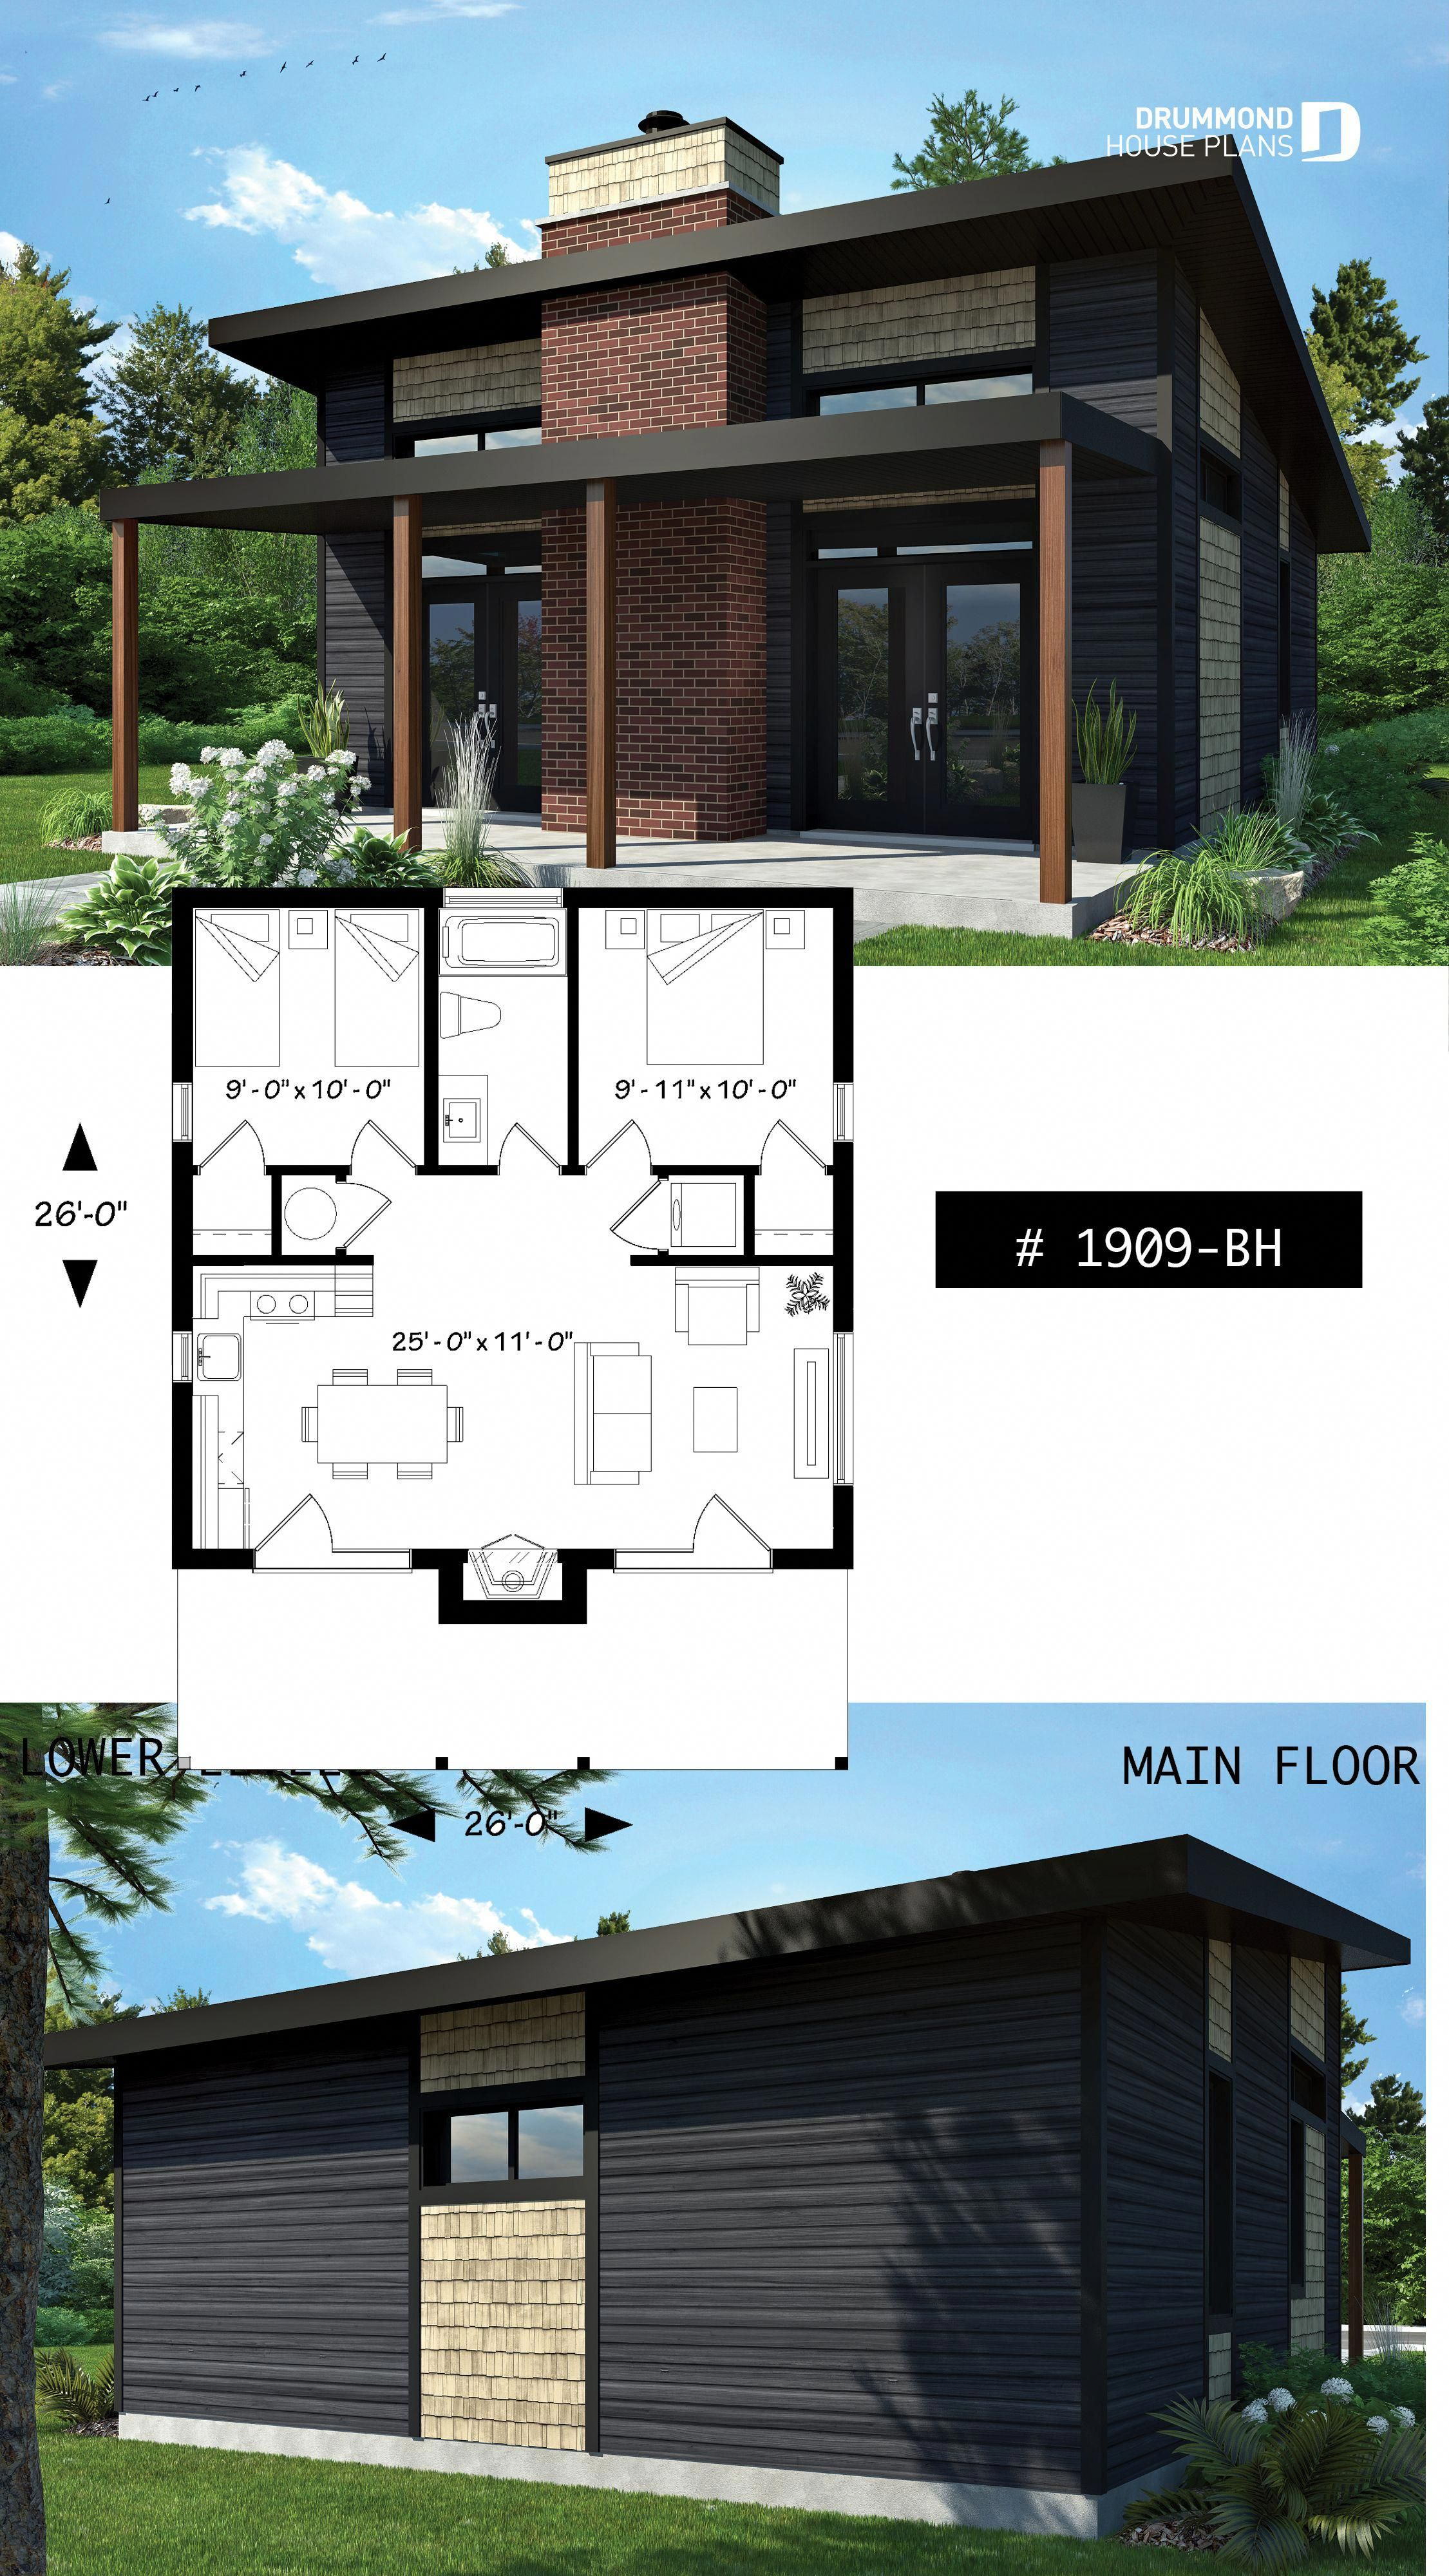 Fabulous Choices To Take A Look At Countrycottagefurniture Small Modern Cabin Modern Farmhouse Plans Cottage House Plans